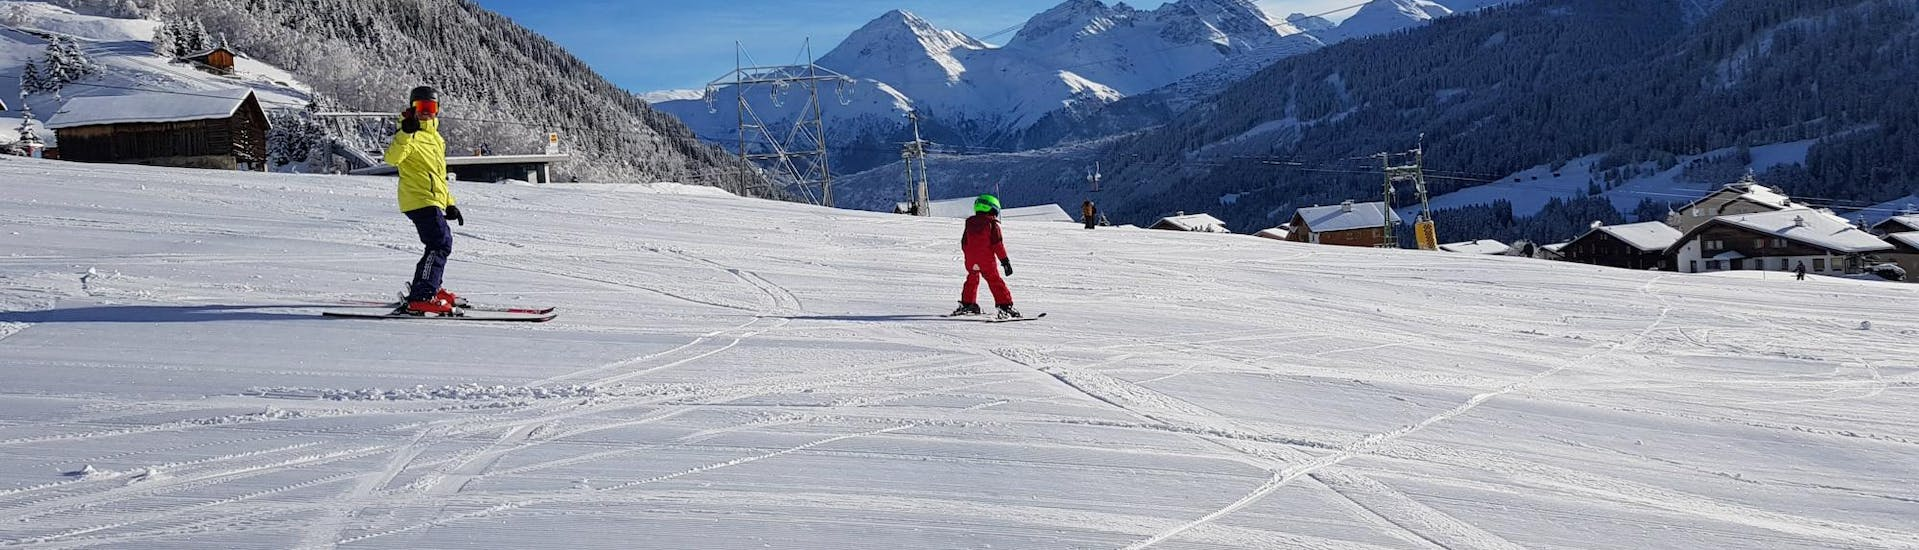 A private ski instructor is supervising a young skier during the Private Ski Lessons for Kids (from 3 years) - All Levels with Skischule Monntains.